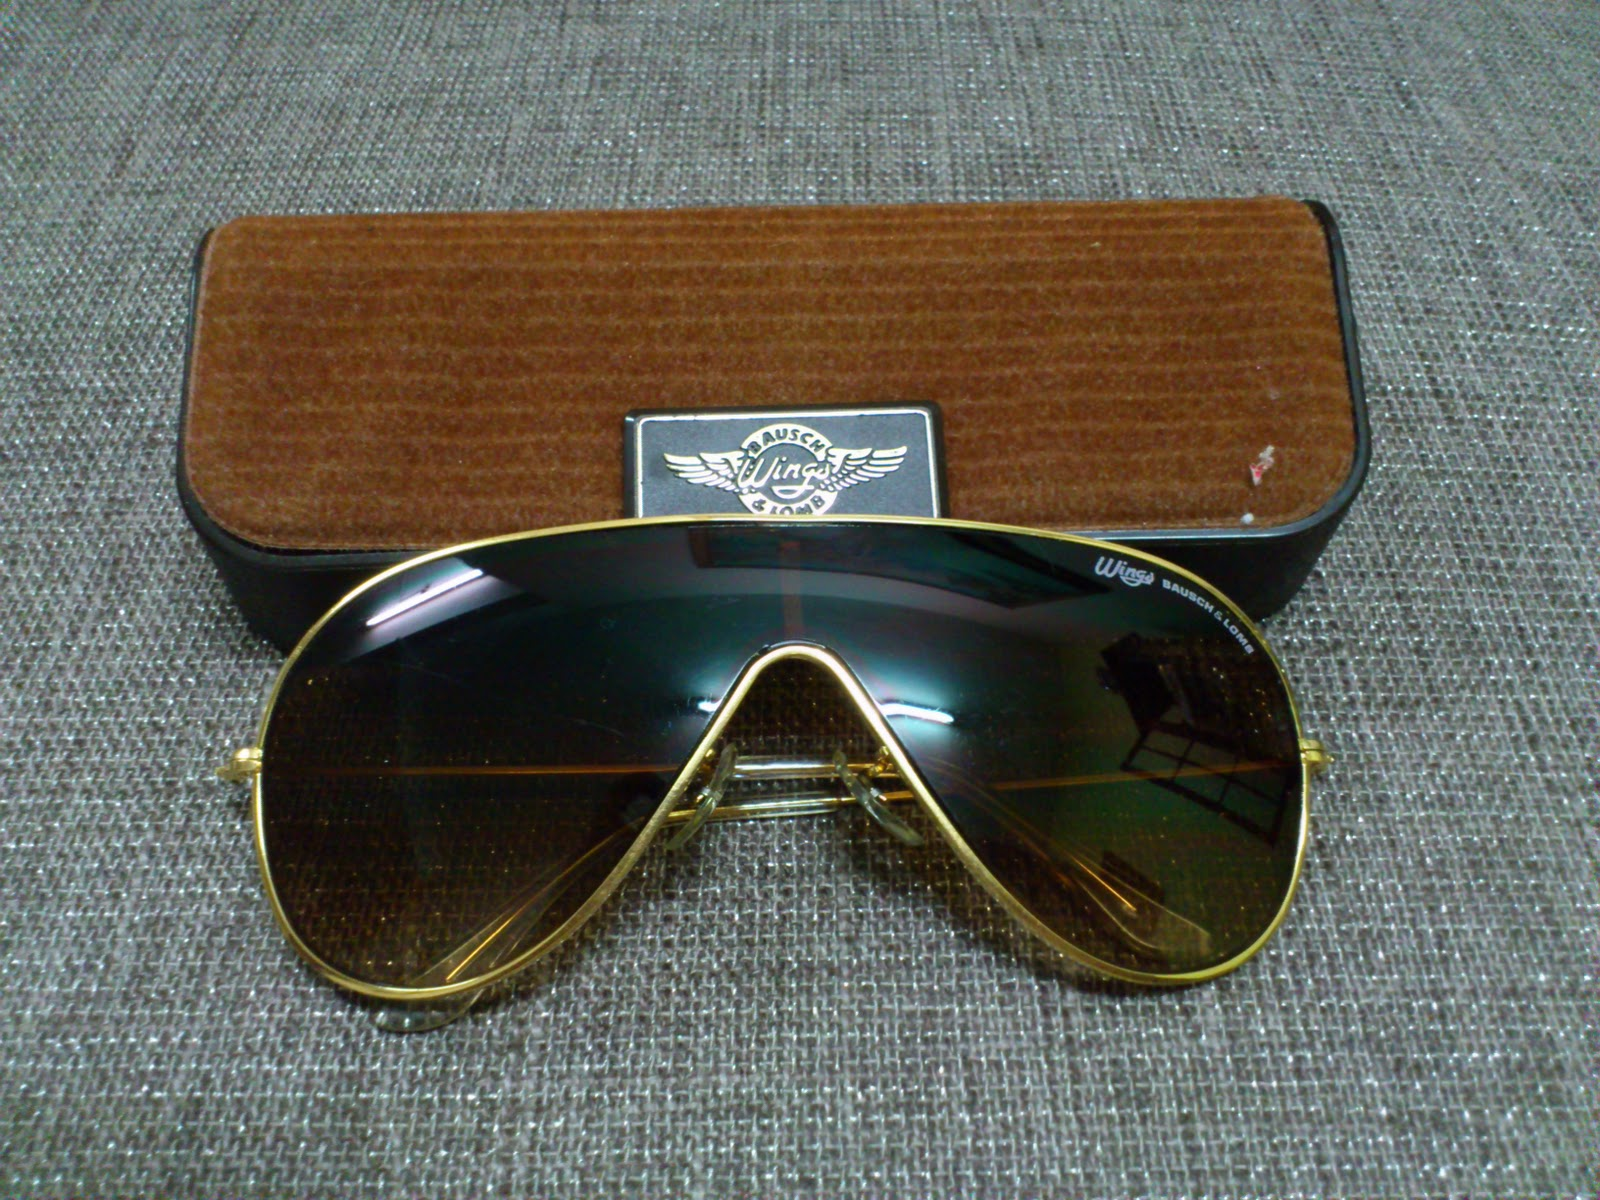 7485dd60db Vintage Bausch   Lomb Rayban Sunglasses  (SOLD)Wings by Bausch ...